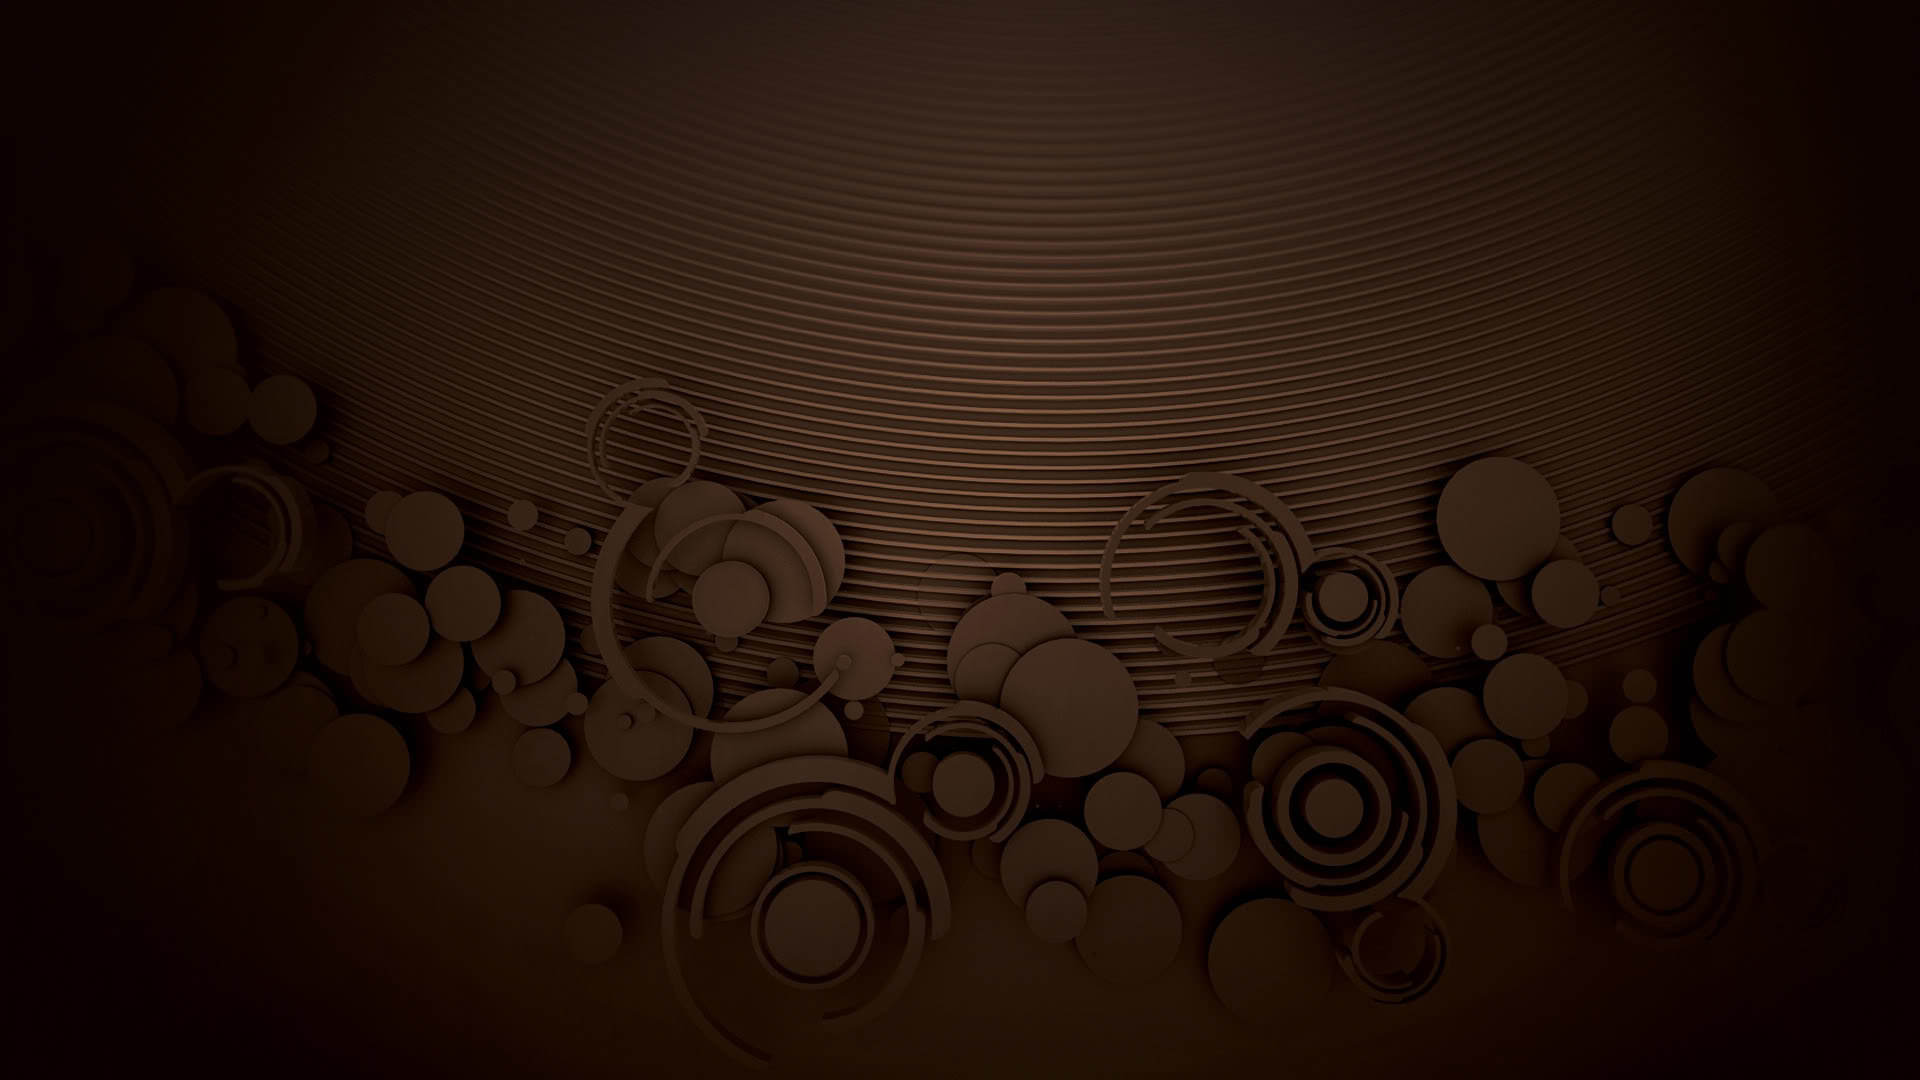 75+ Brown Backgrounds, Wallpapers, Images, Pictures   Design Trends